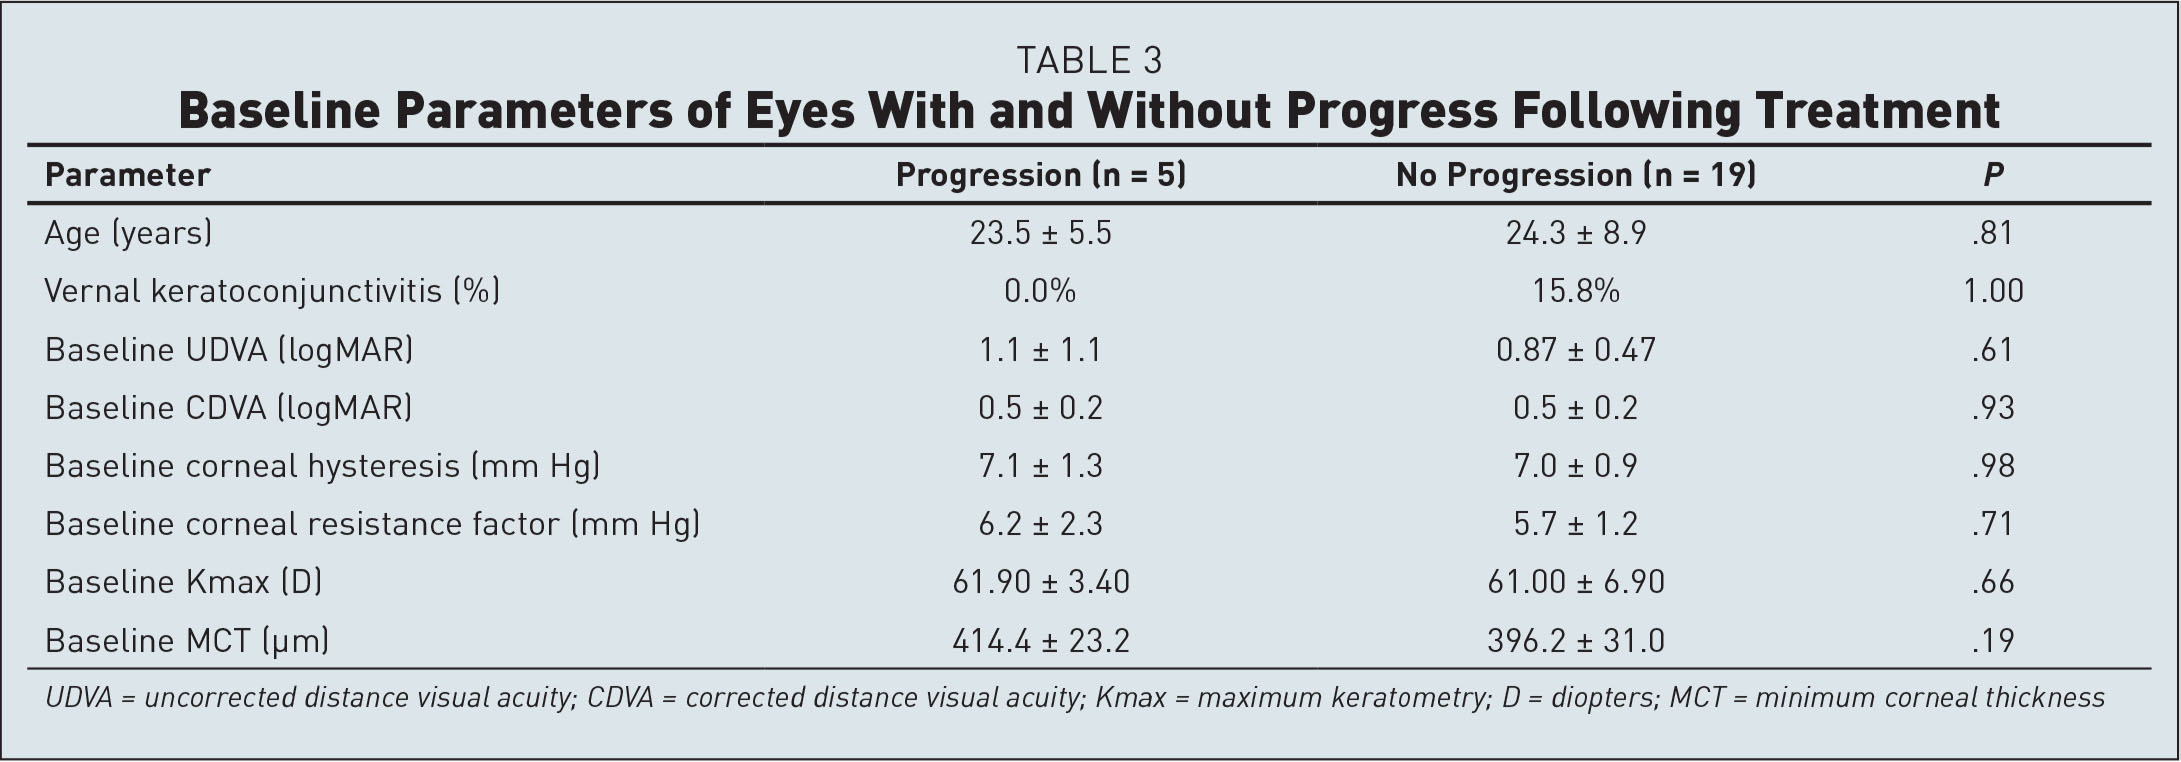 Baseline Parameters of Eyes With and Without Progress Following Treatment